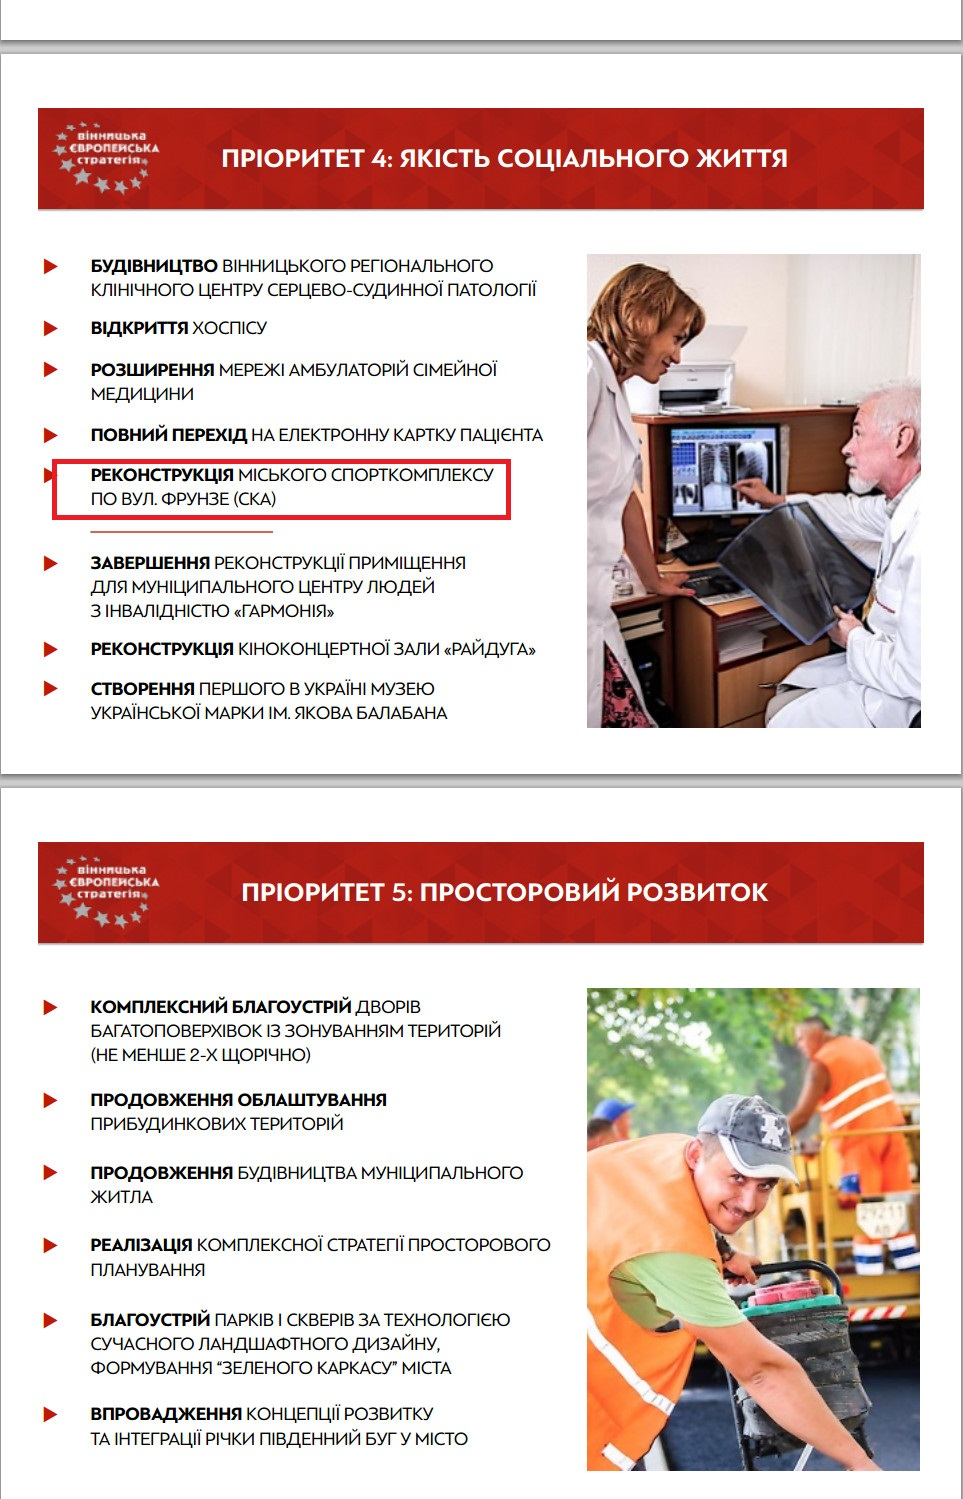 https://eurostrategy.vn.ua/strategy.pdf